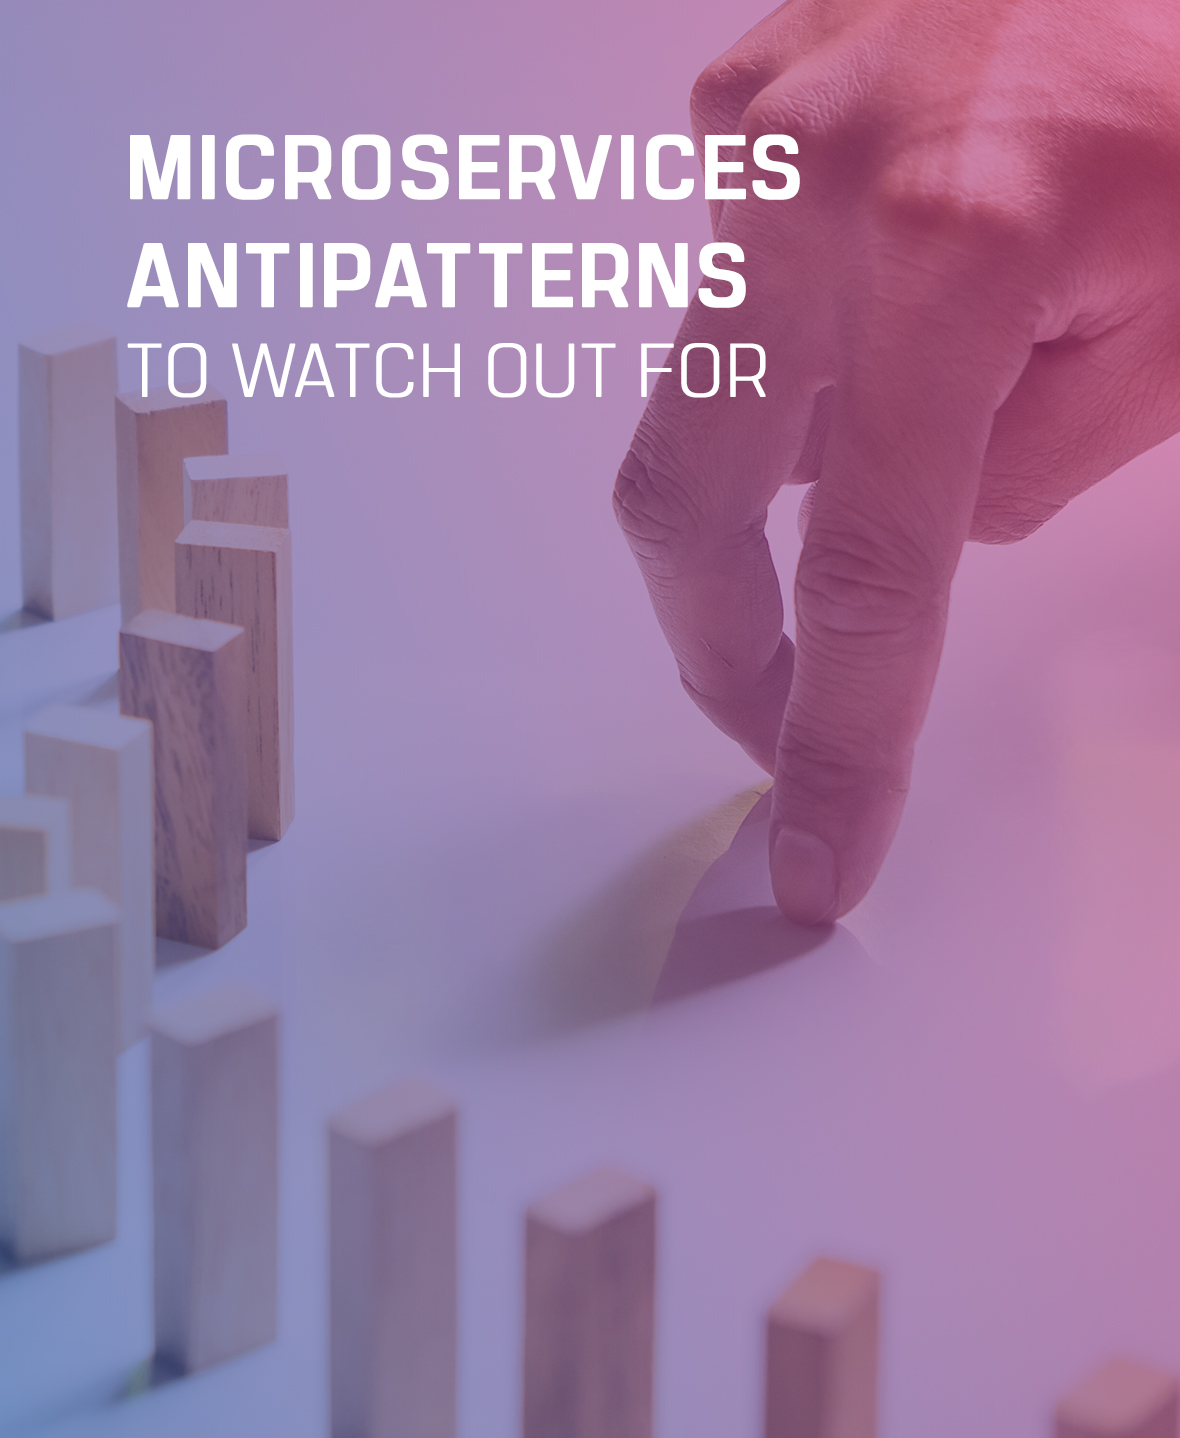 Microservices Antipatterns